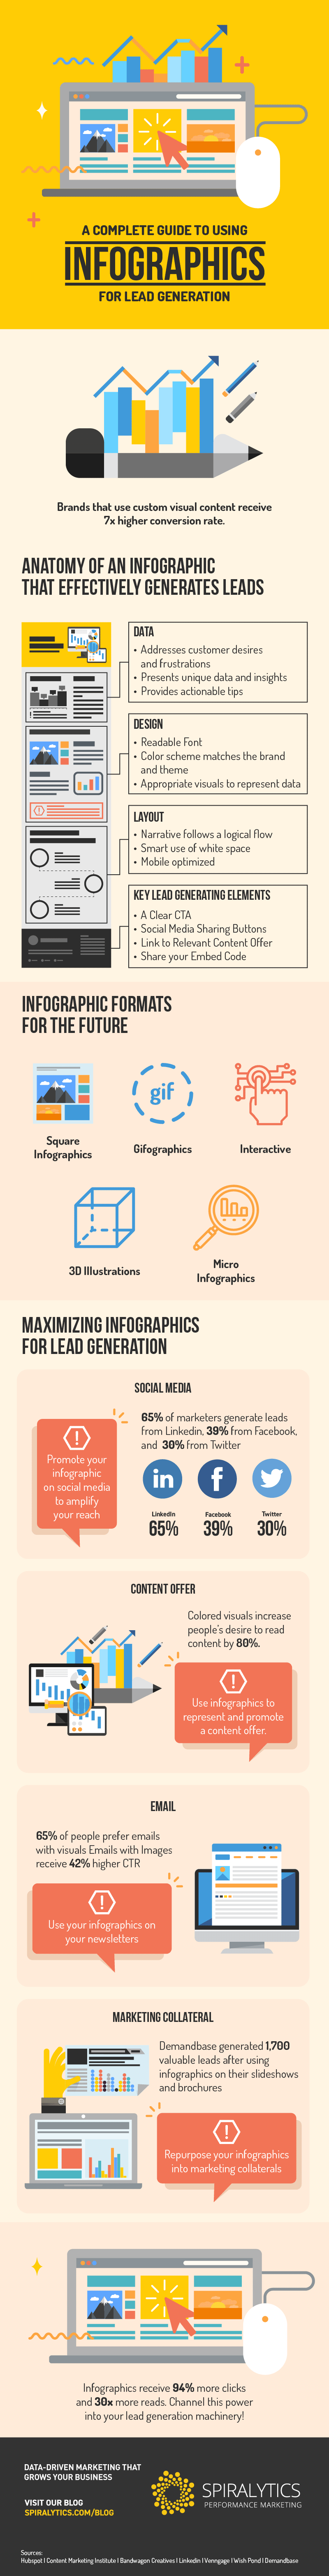 Infographics outlines how to make best use of infographics as a lead gen tool